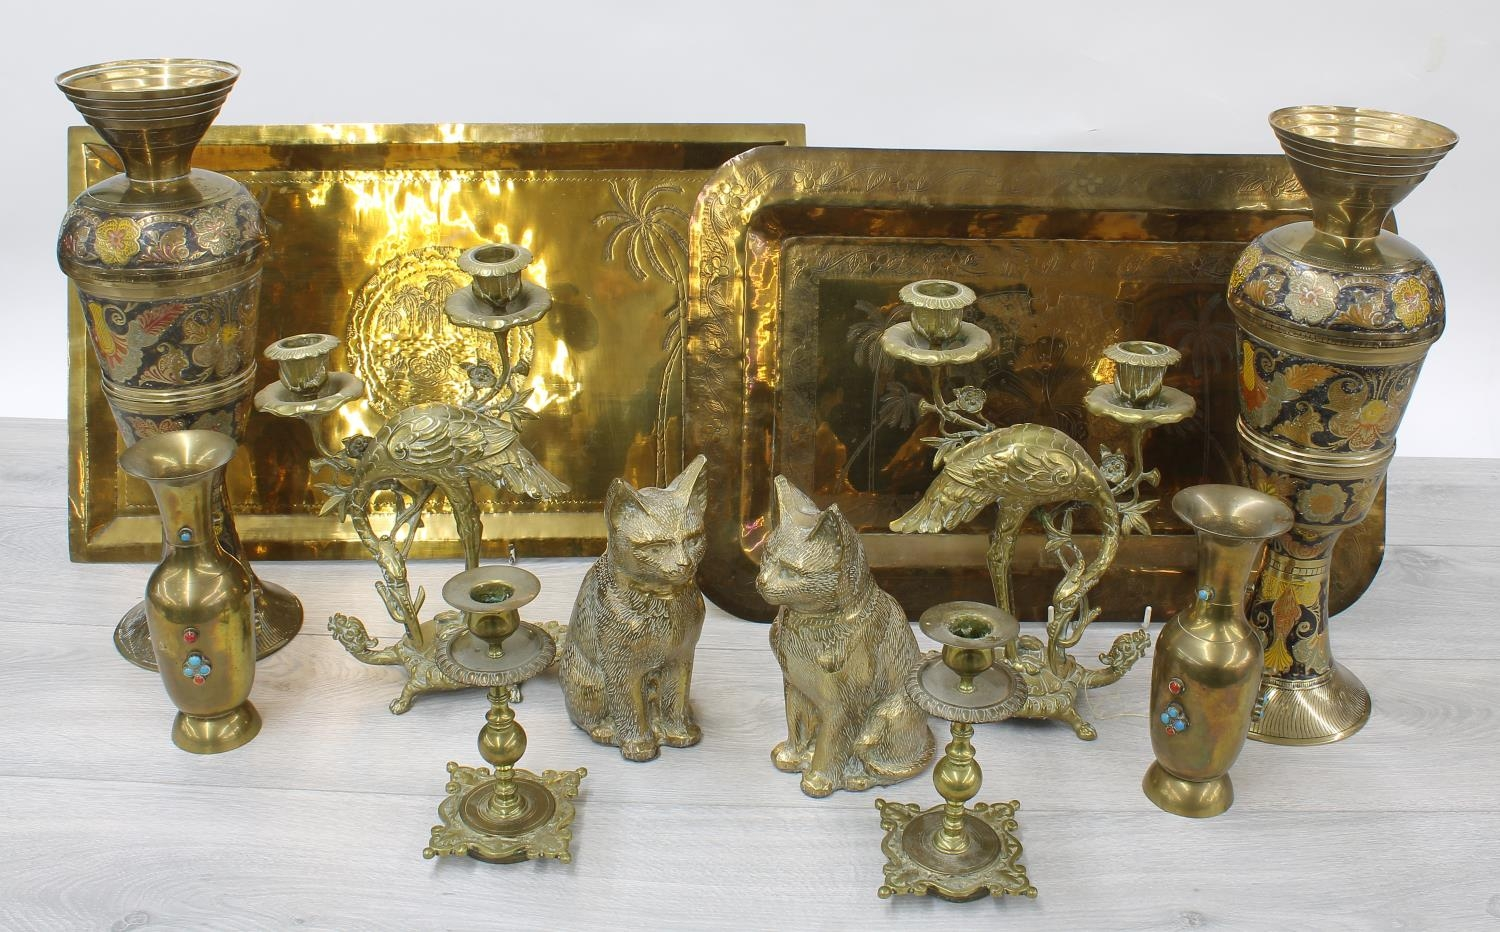 Mixed collection of Eastern and decorative brassware including a pair of turtleand crane twin-